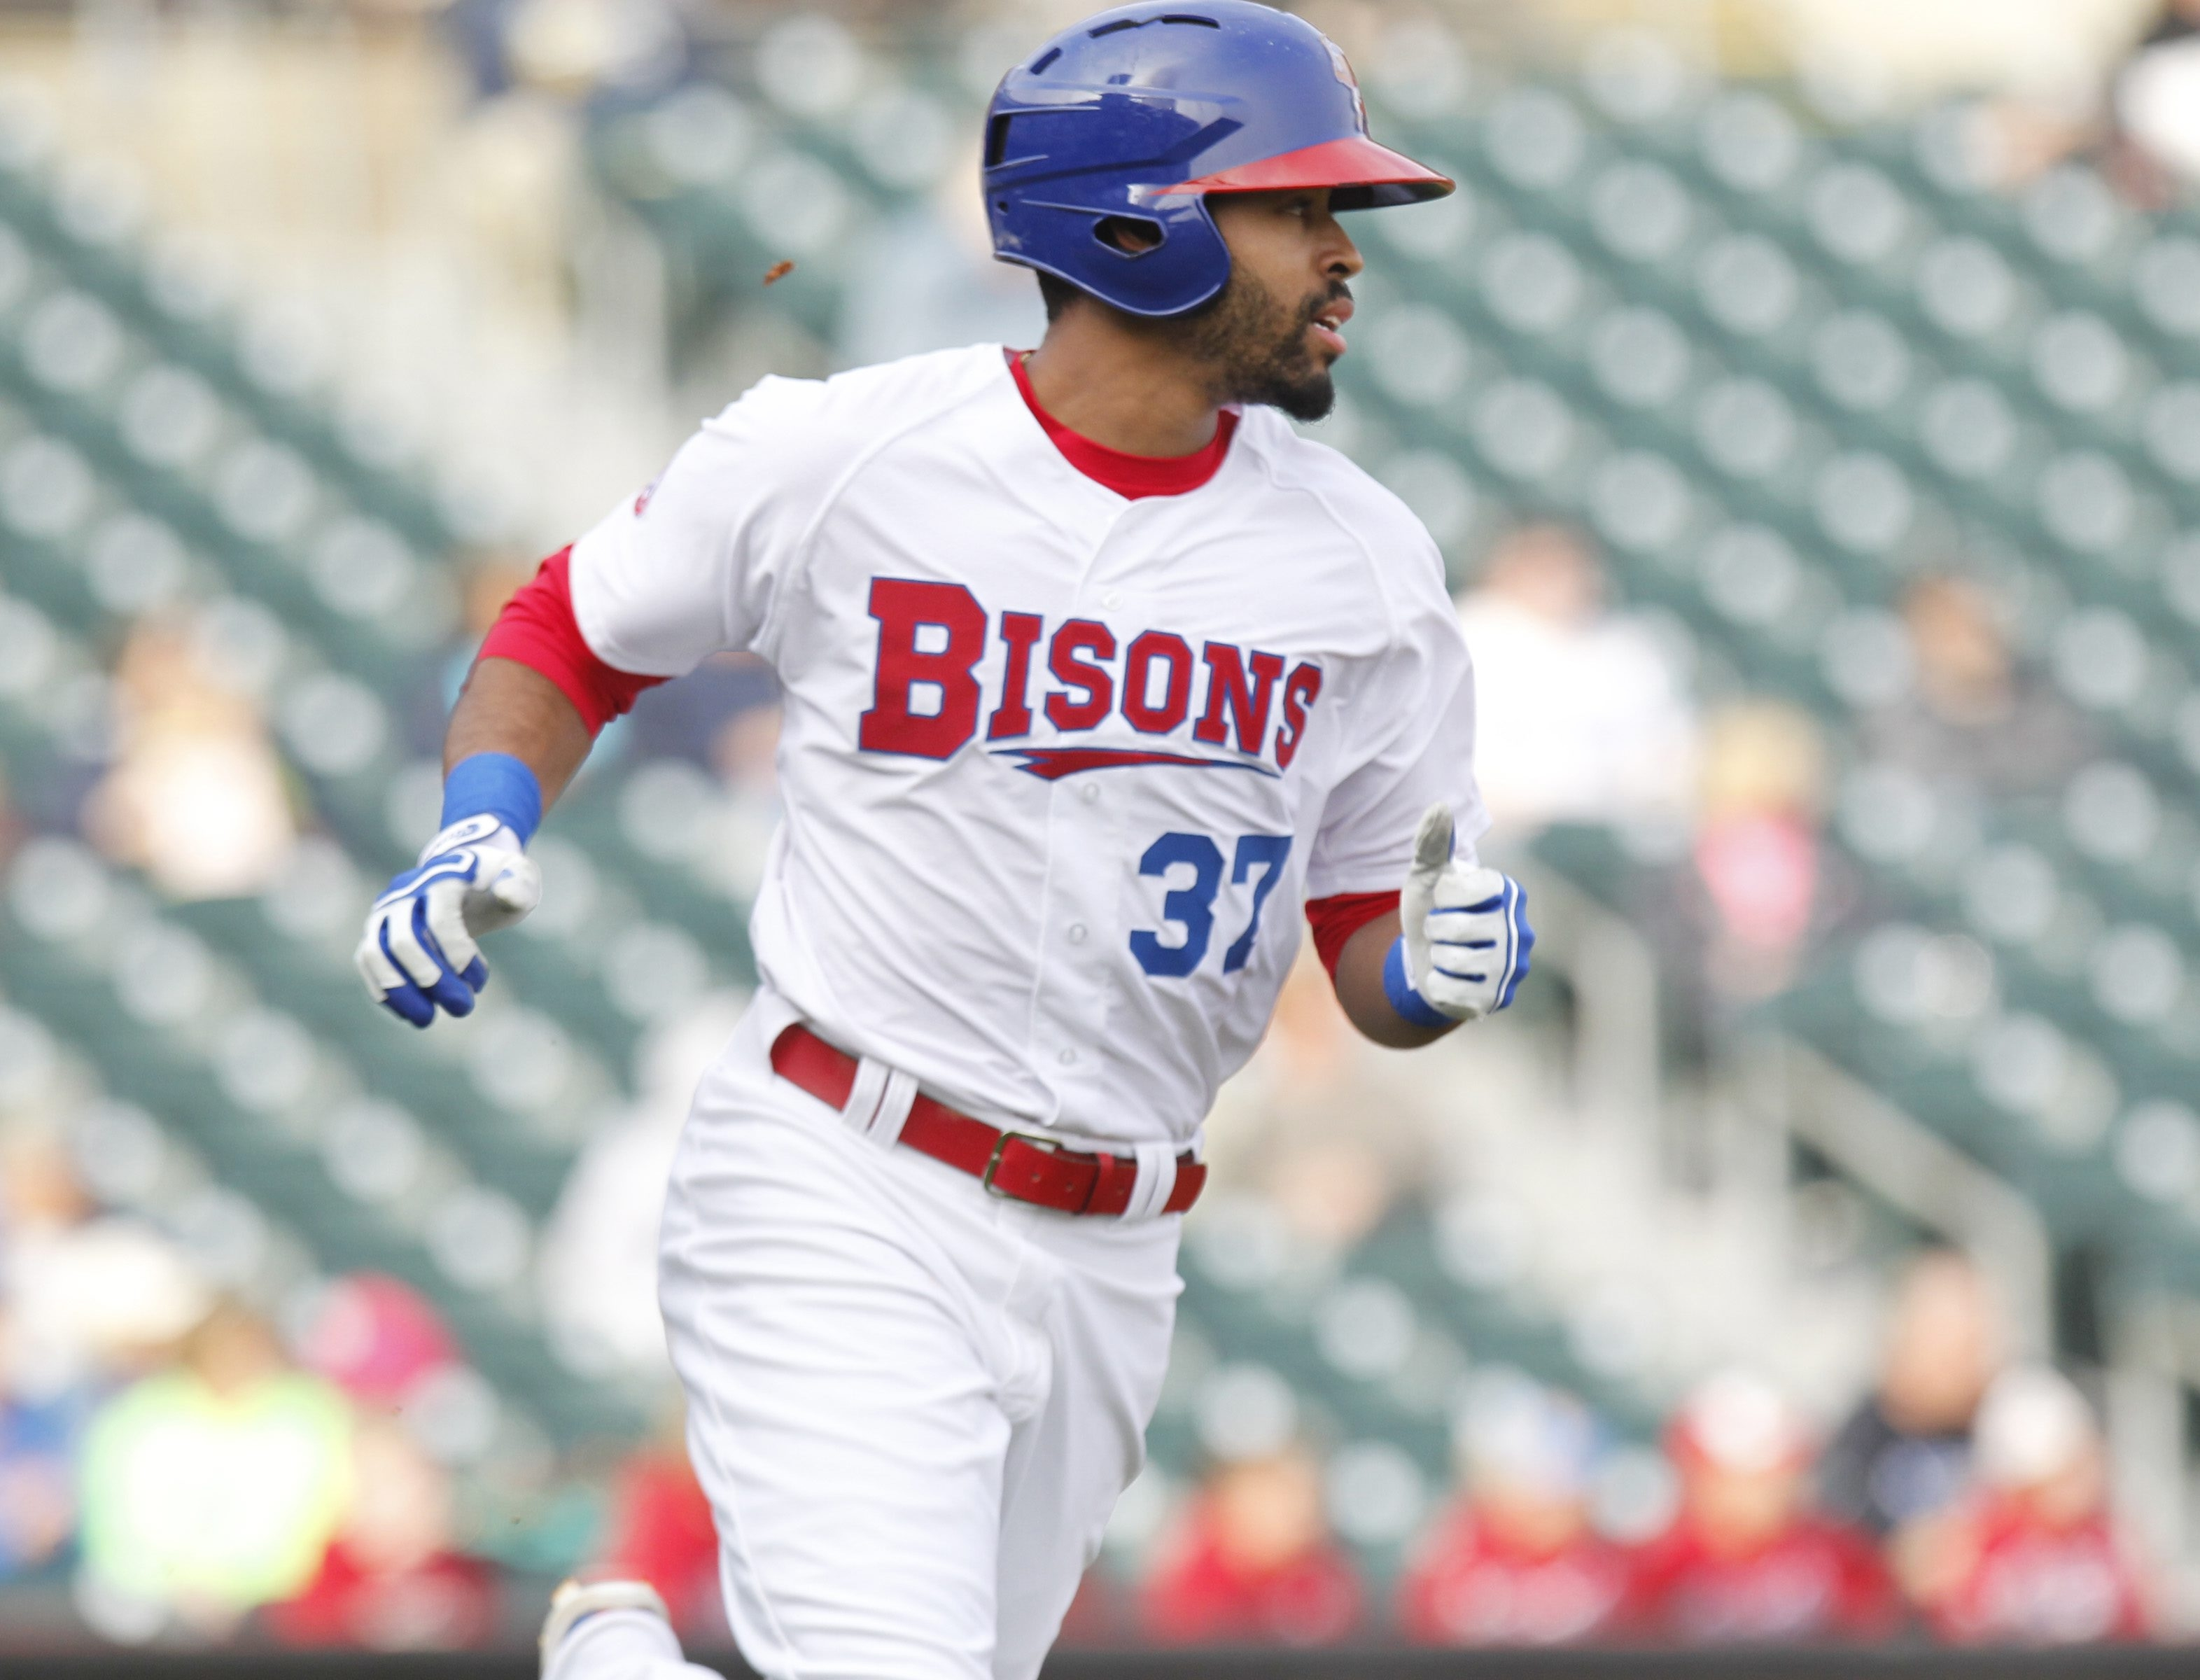 Dalton Pompey has returned to the Bisons' lineup after missing five games with a toe injury. (Harry Scull Jr./Buffalo News file photo)